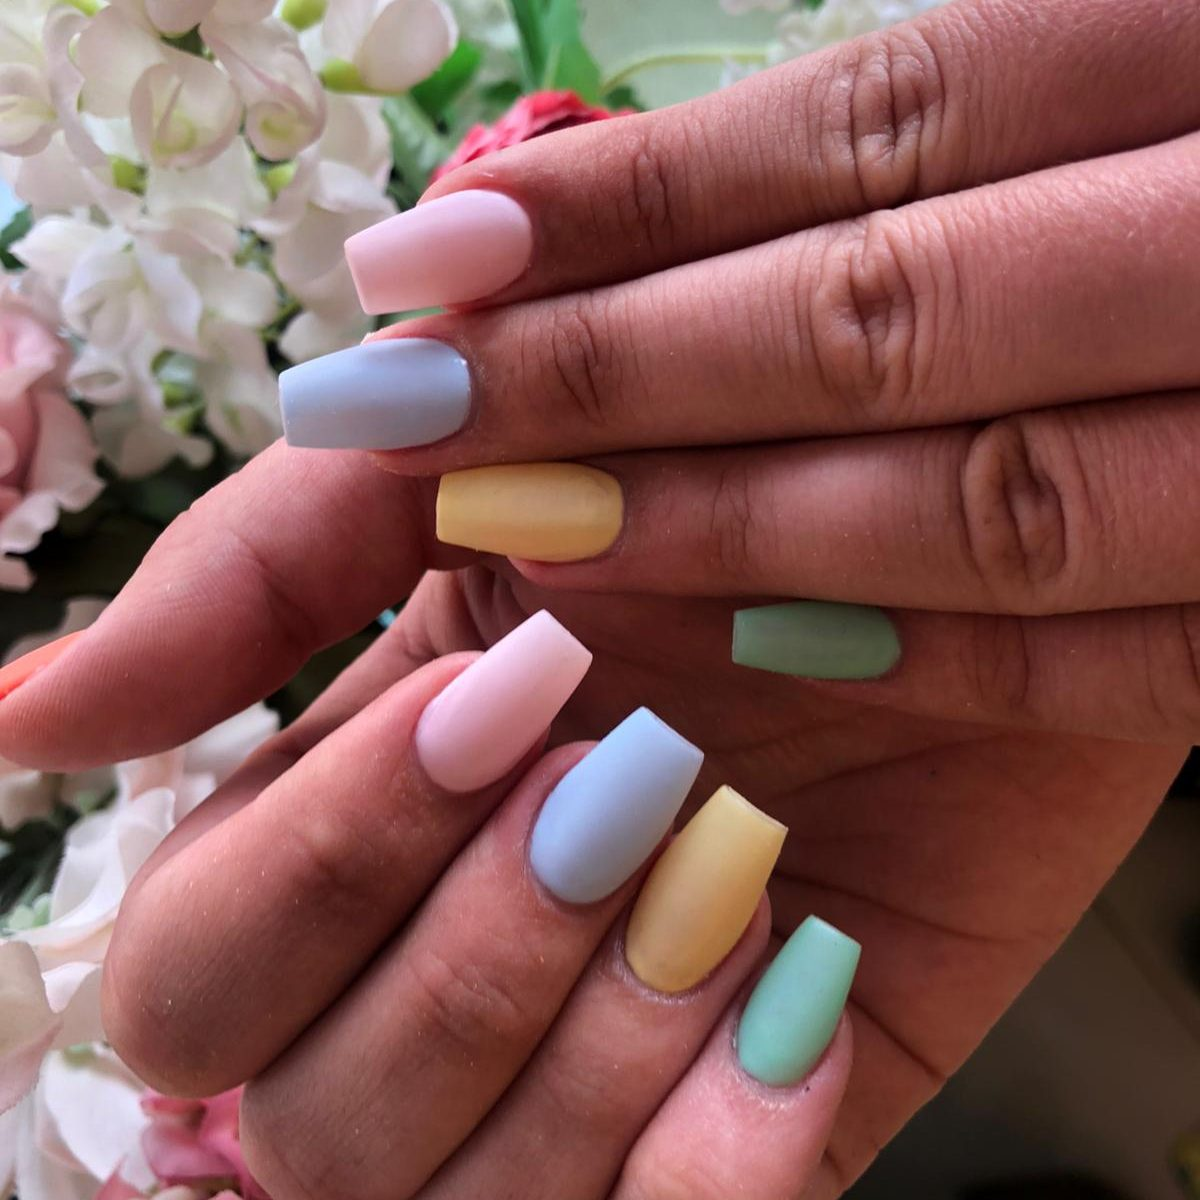 nail-plaza-twickenham-nail-design-2608-3